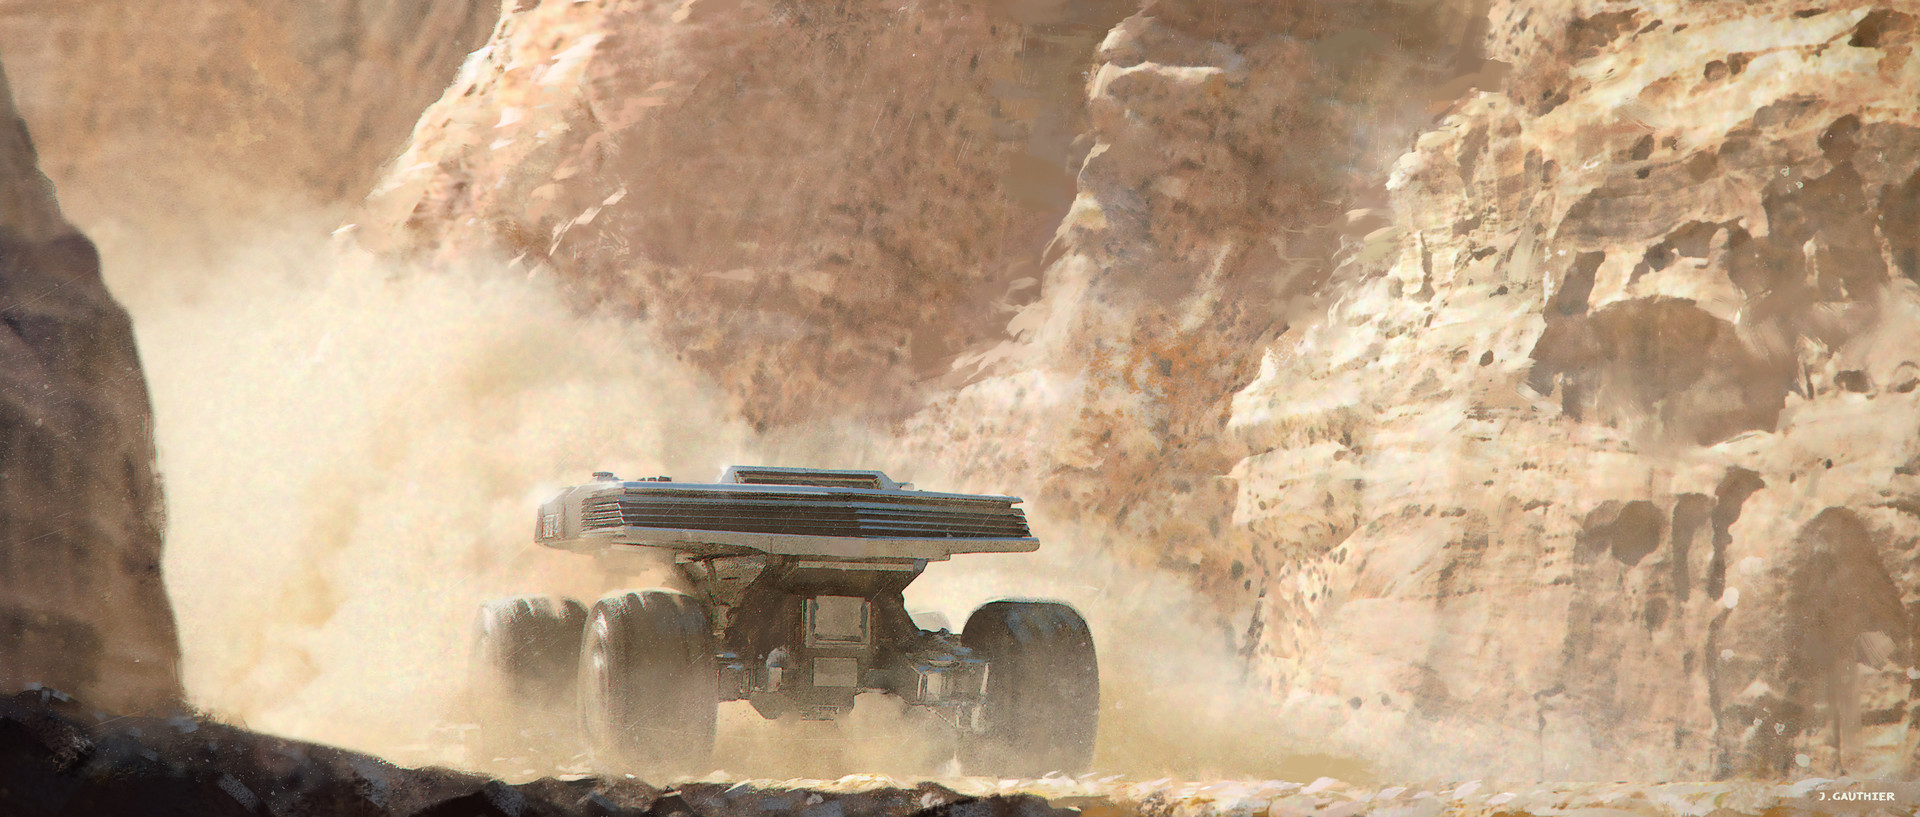 Julien gauthier buggy story 02